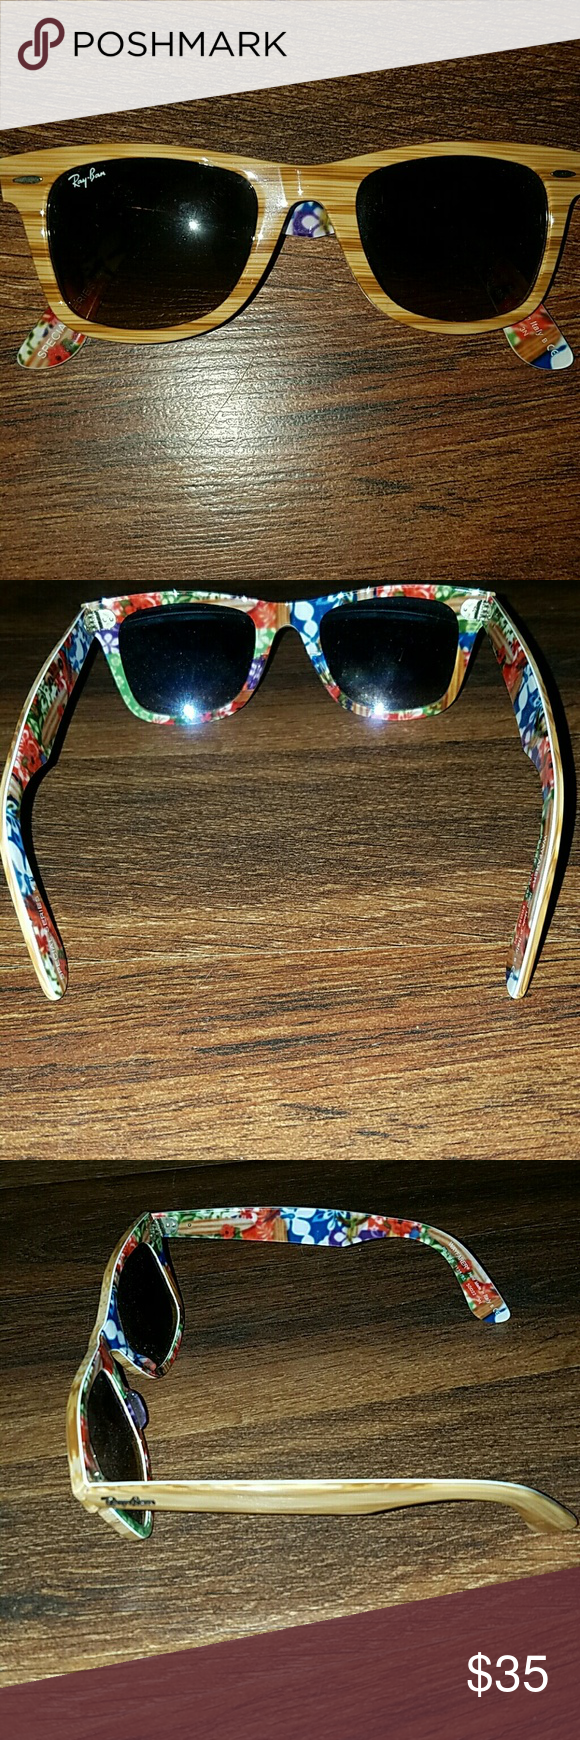 RayBan Sunglasses with Case only worn a couple times. perfect condition! Ray-Ban Accessories Sunglasses